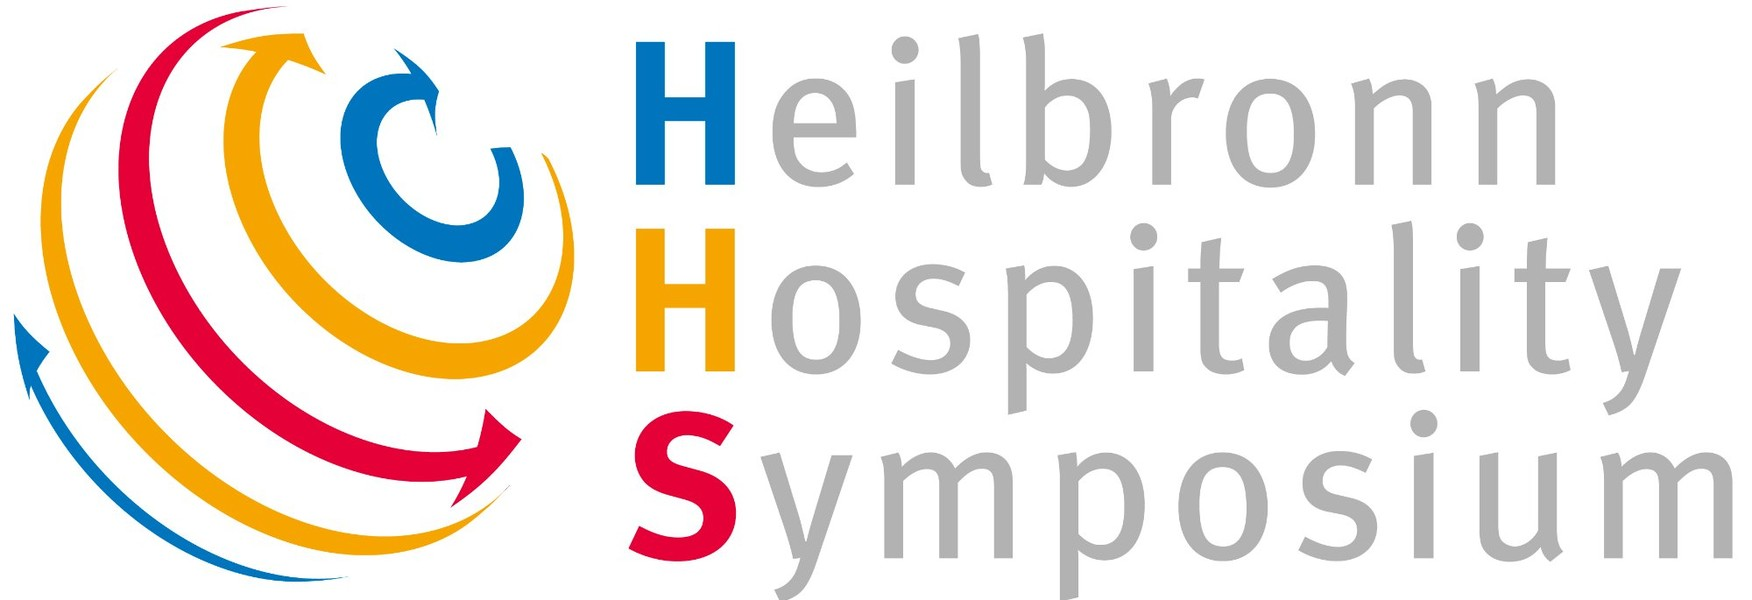 8. Heilbronn Hospitality Symposium – Review